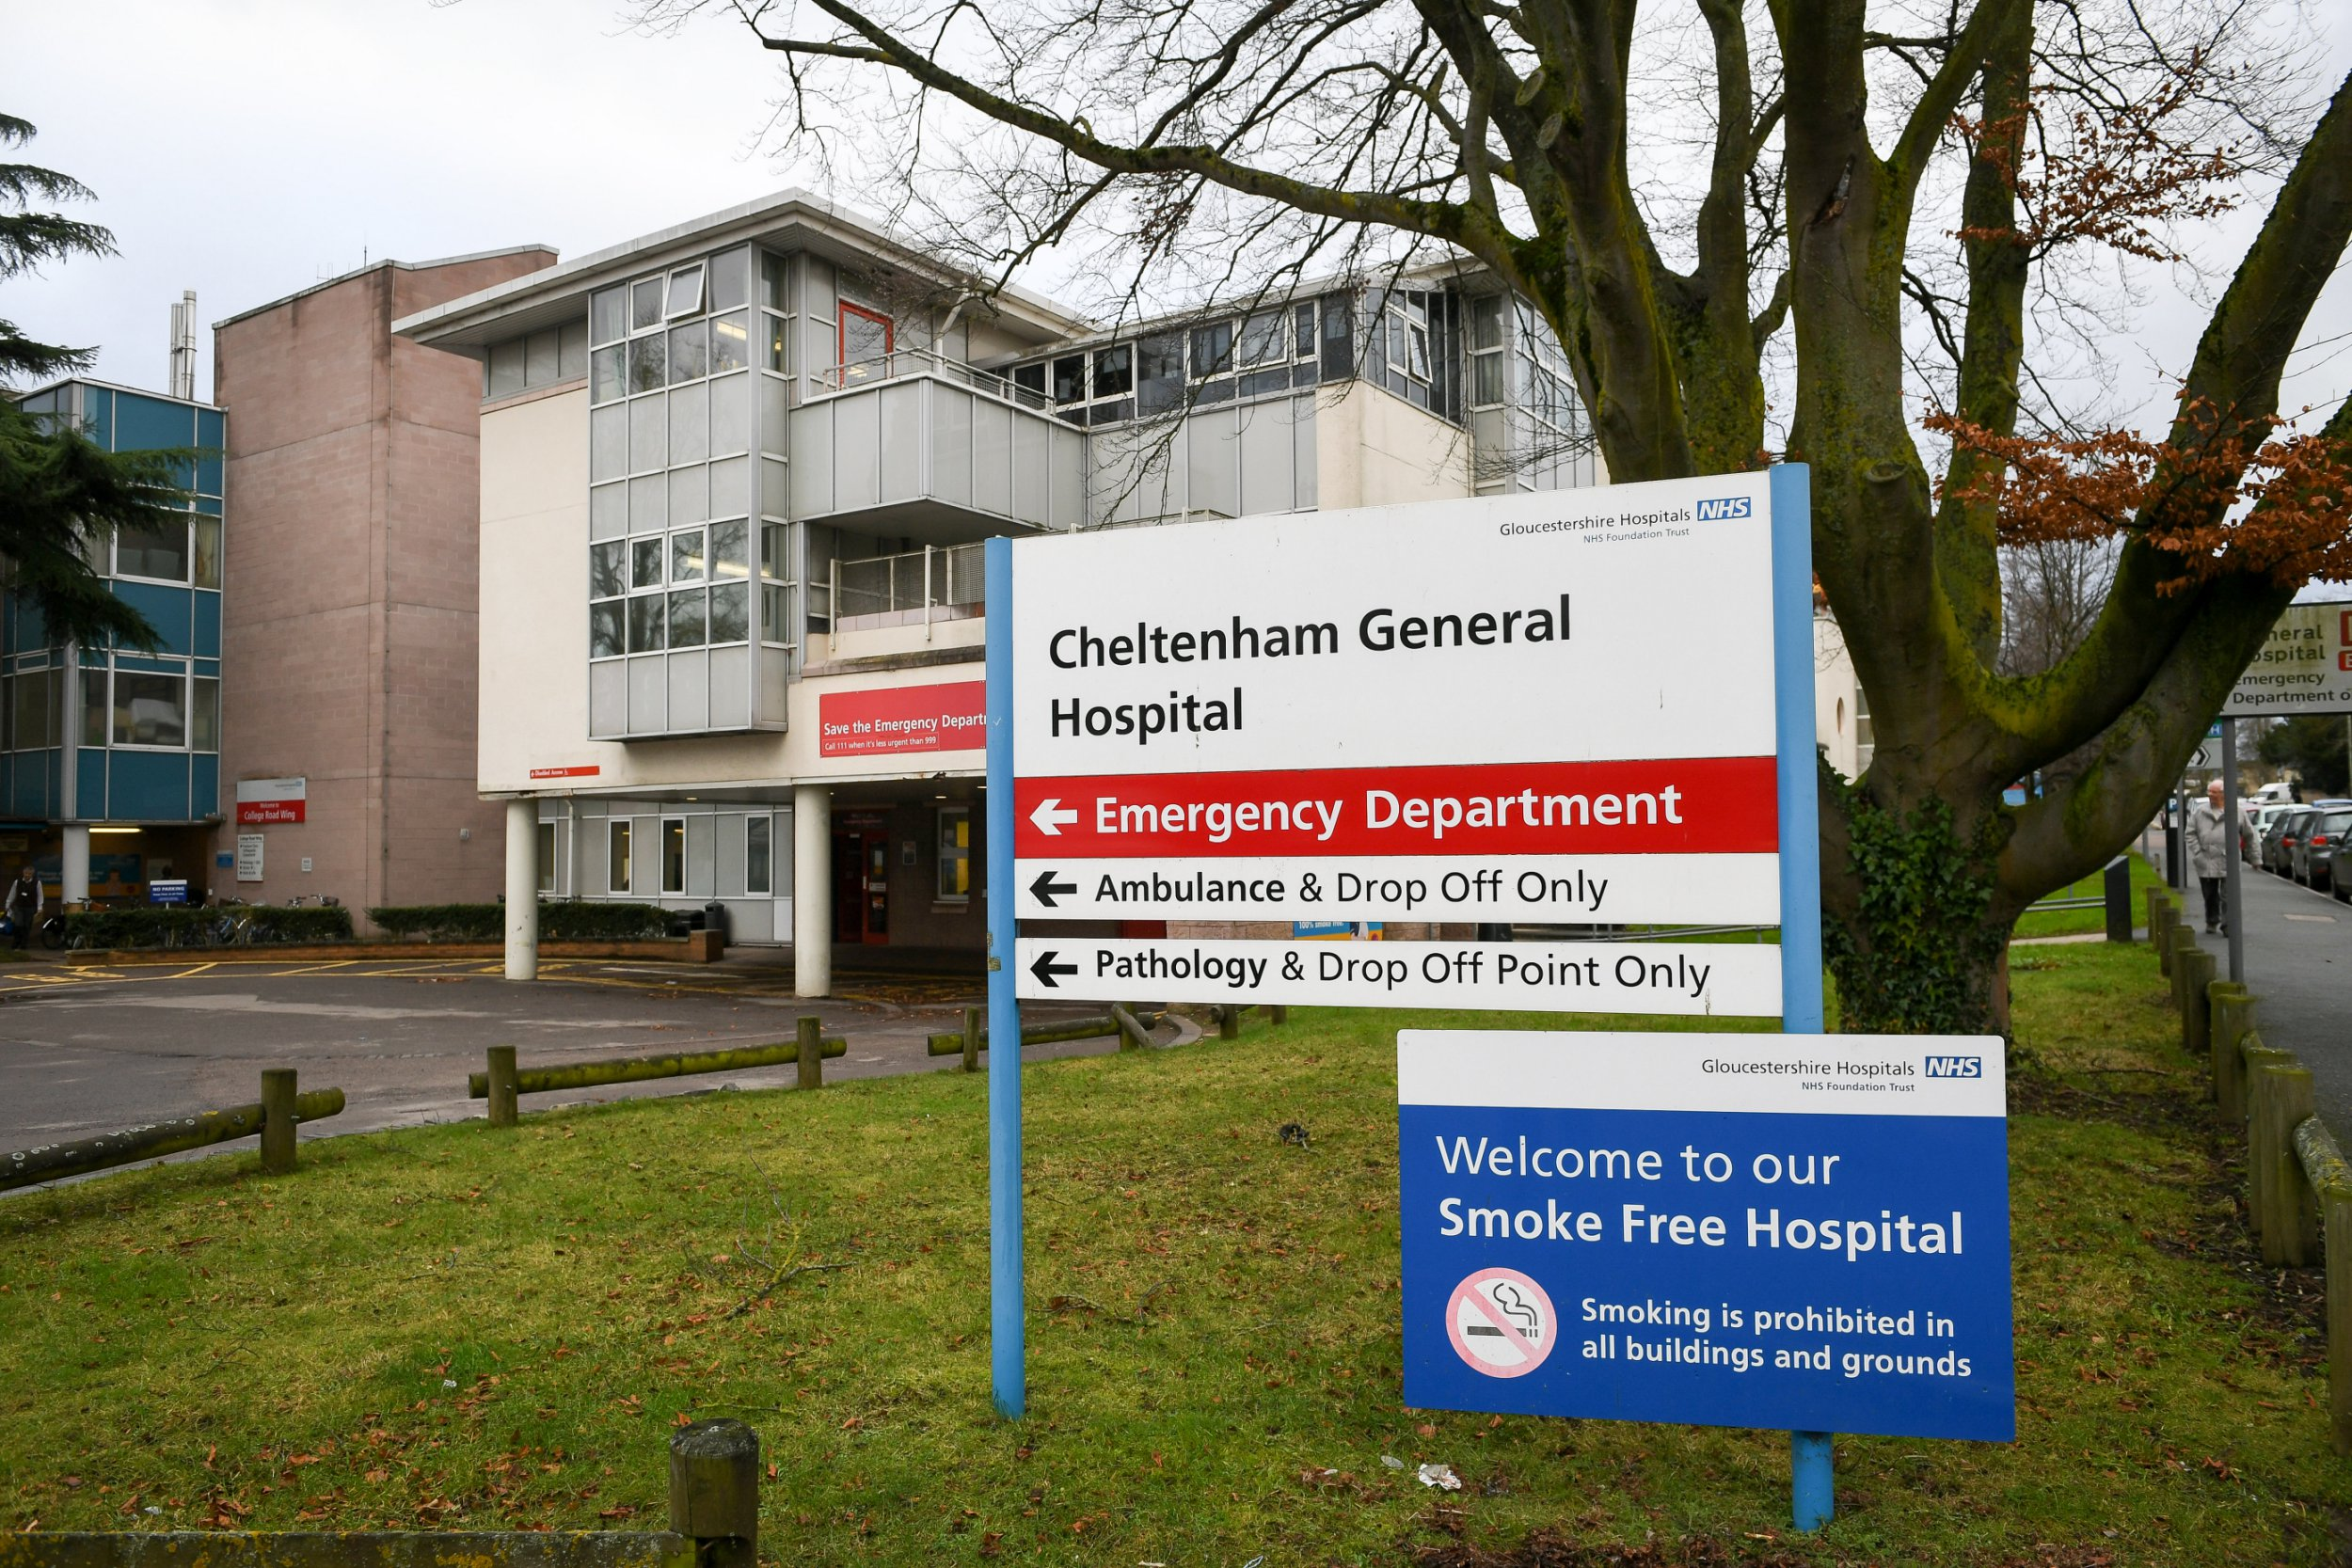 A General Hospital and Emergency Department road sign outside Cheltenham General Hospital.